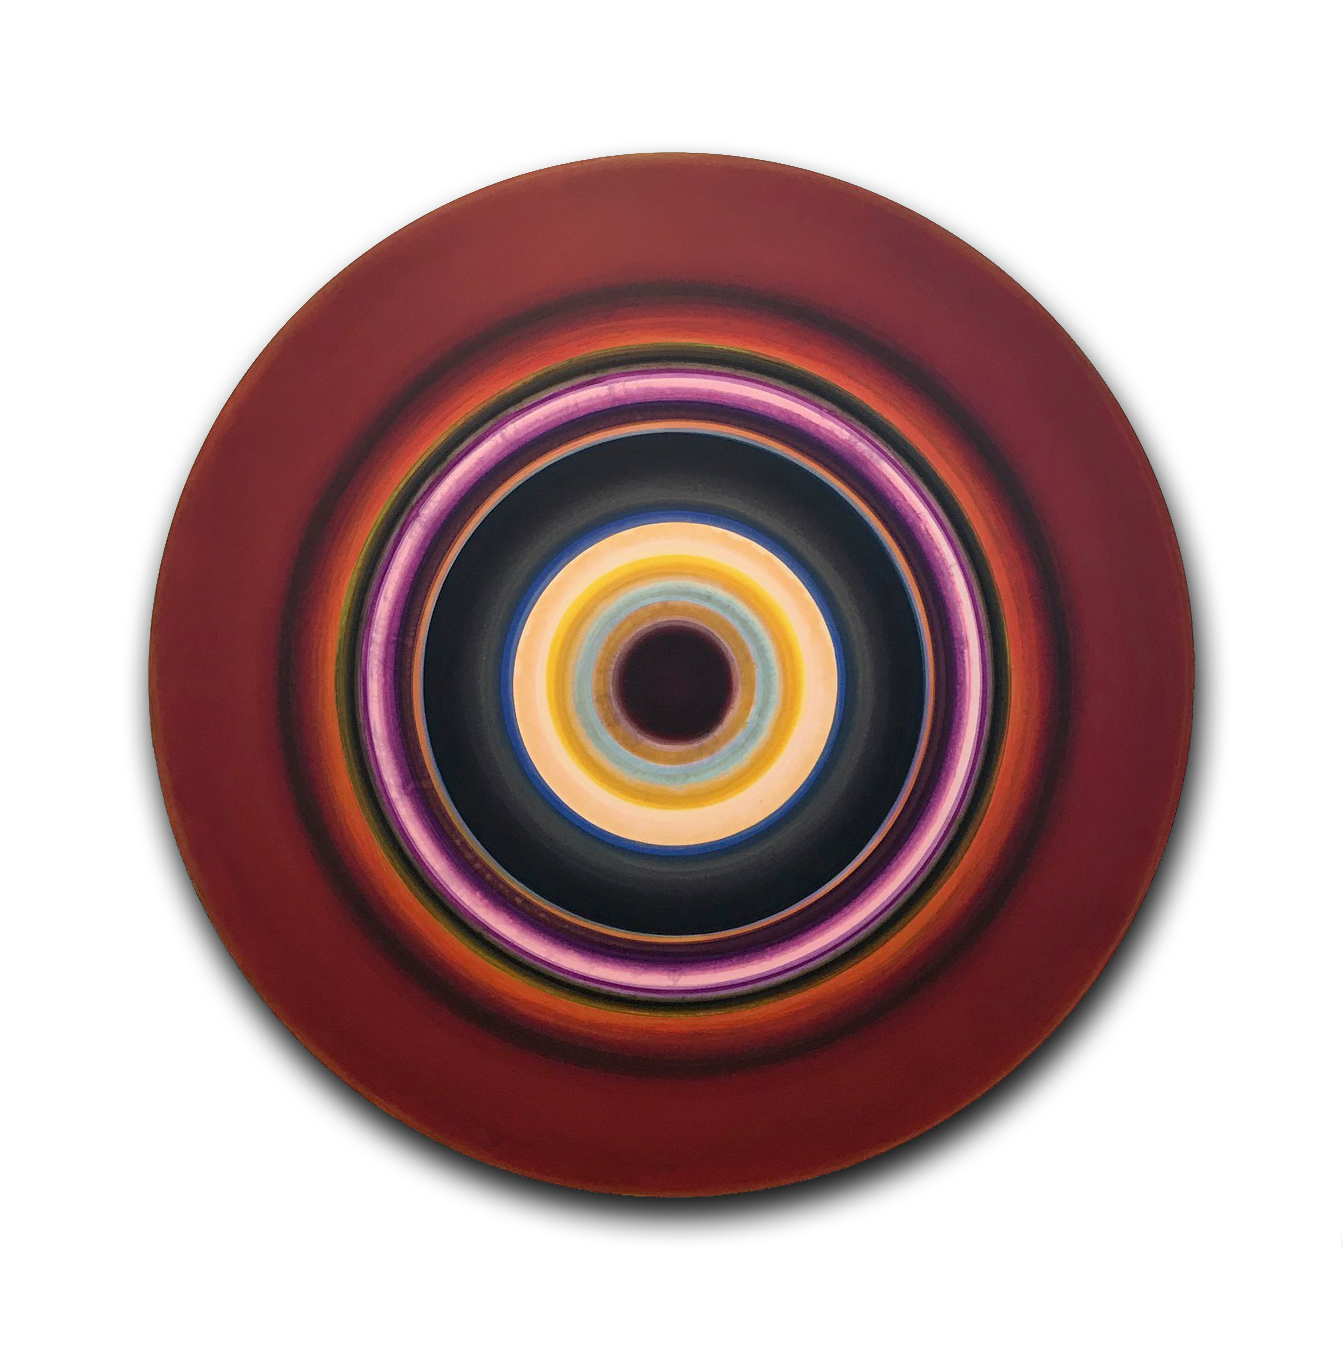 Ulrich Panzer, untitled (17-48-1), acrylic on aluminum, 48 in. diameter